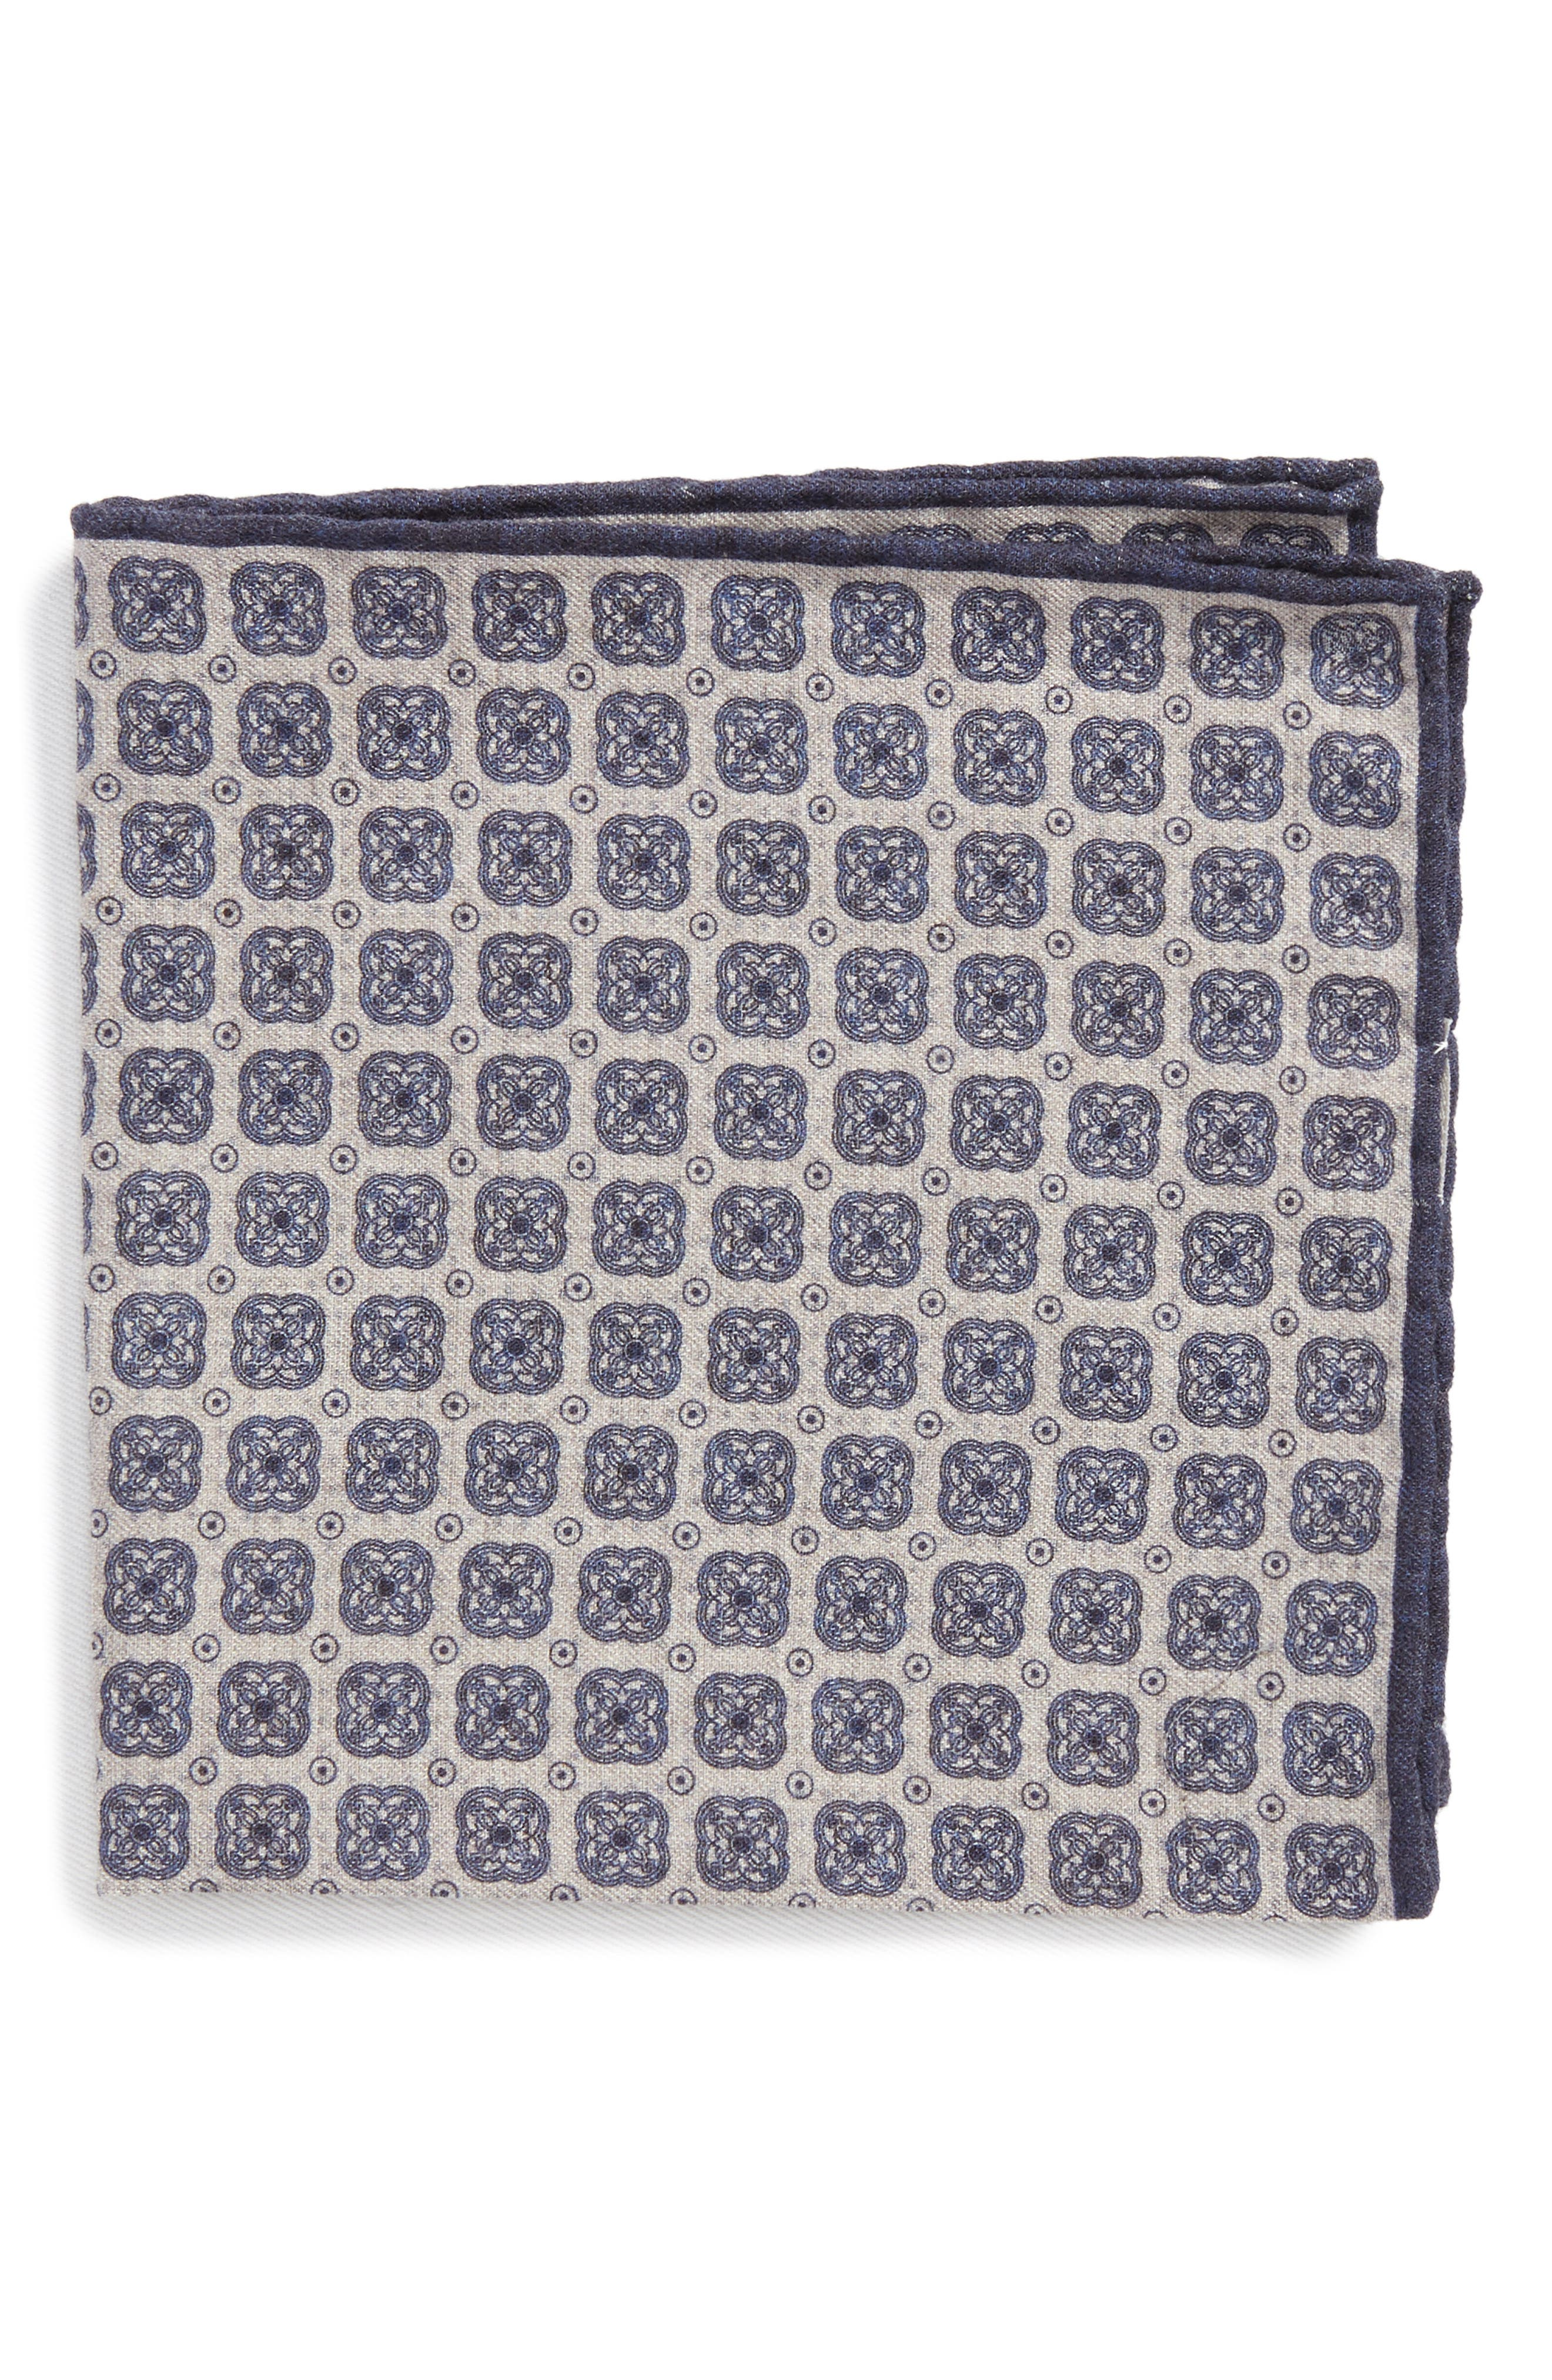 Medallion Wool & Cotton Pocket Square,                         Main,                         color, Grey